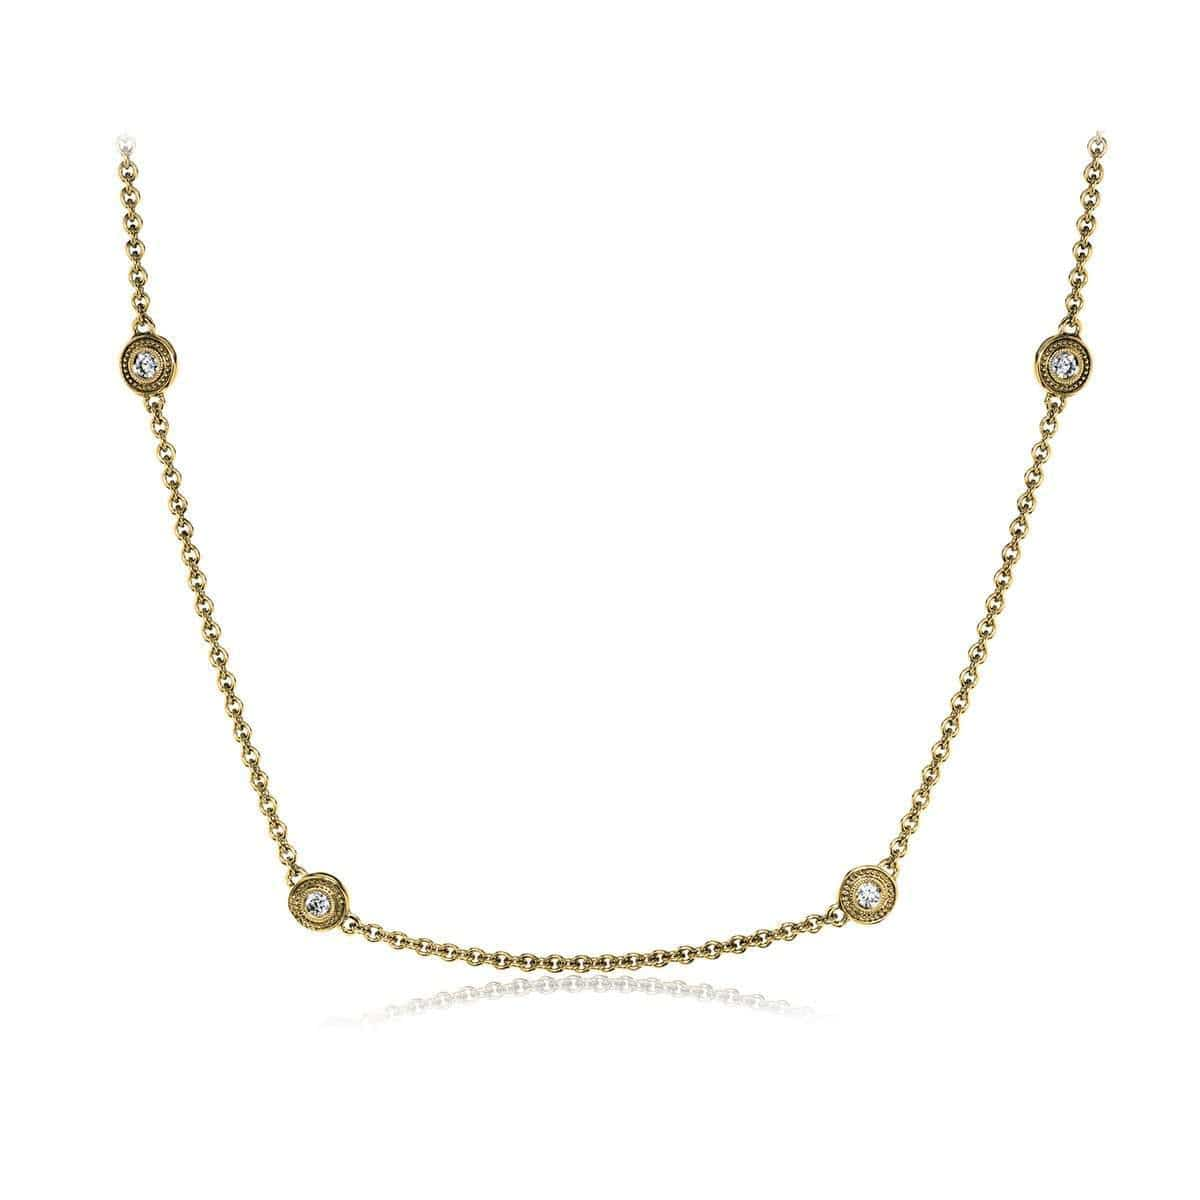 18k Yellow Gold Rounds Diamonds Chain - CH109-Y-Simon G.-Renee Taylor Gallery